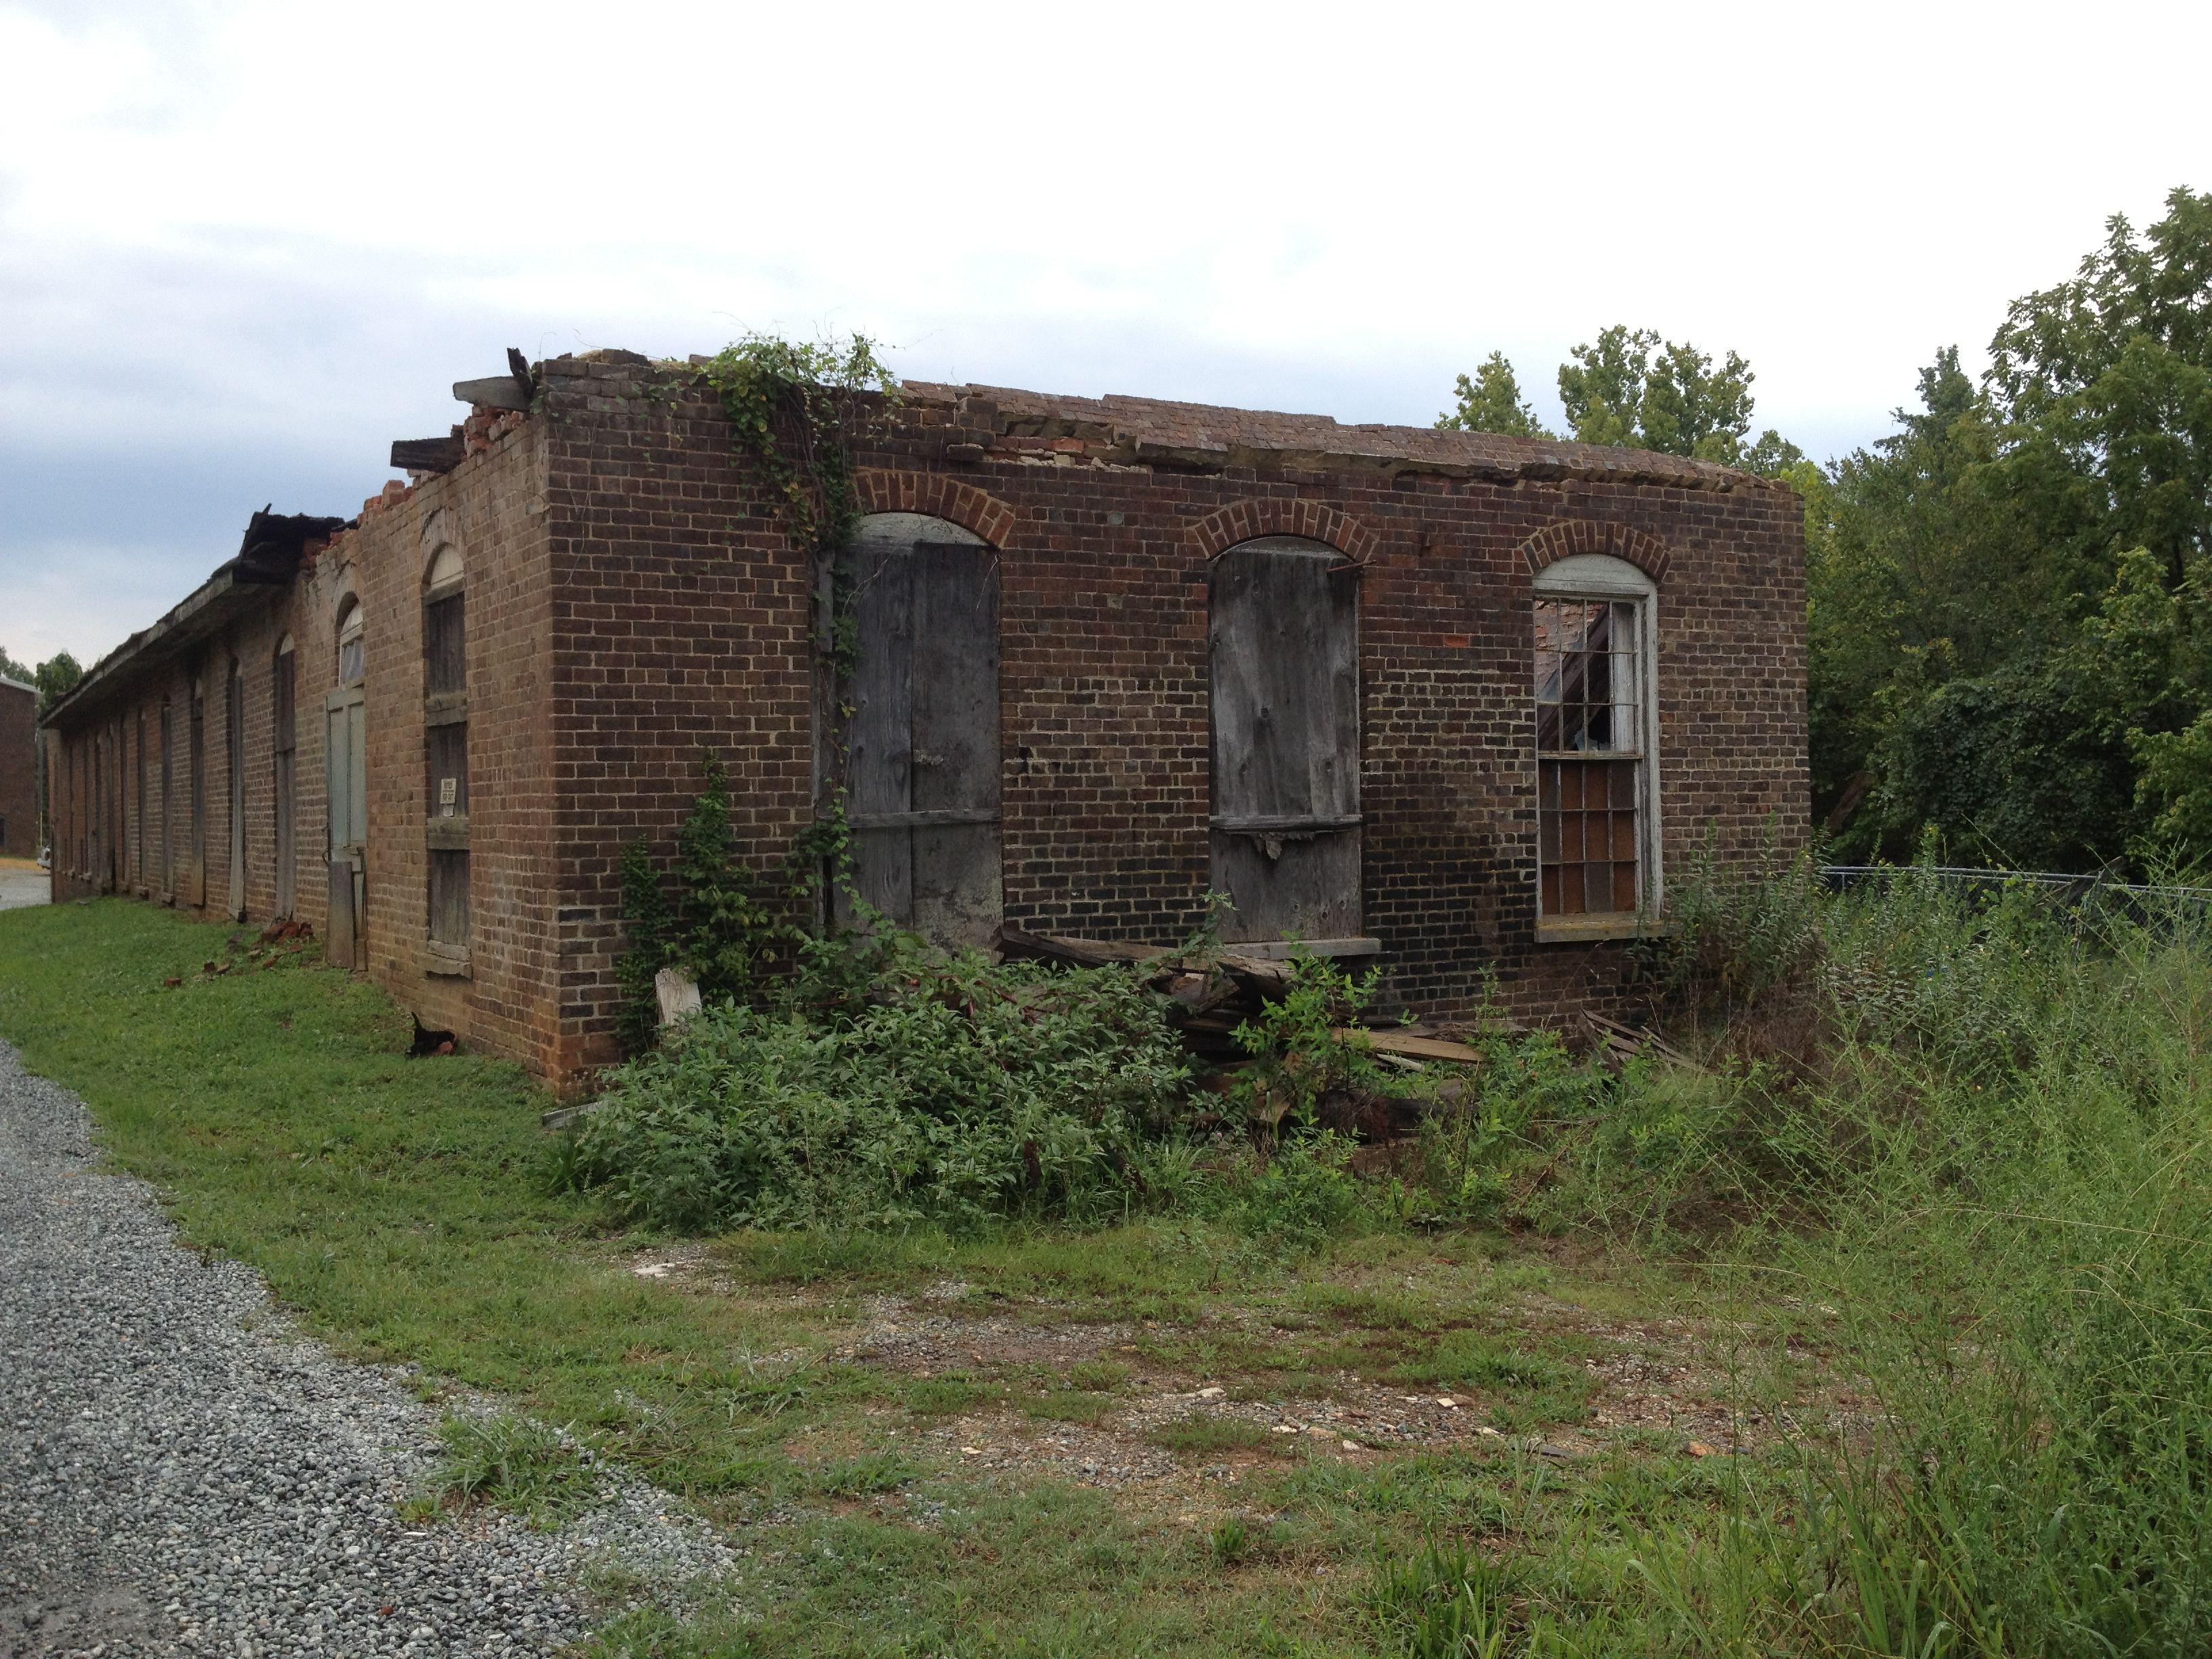 One of the abandoned Glencoe Mill buildings. This cotton